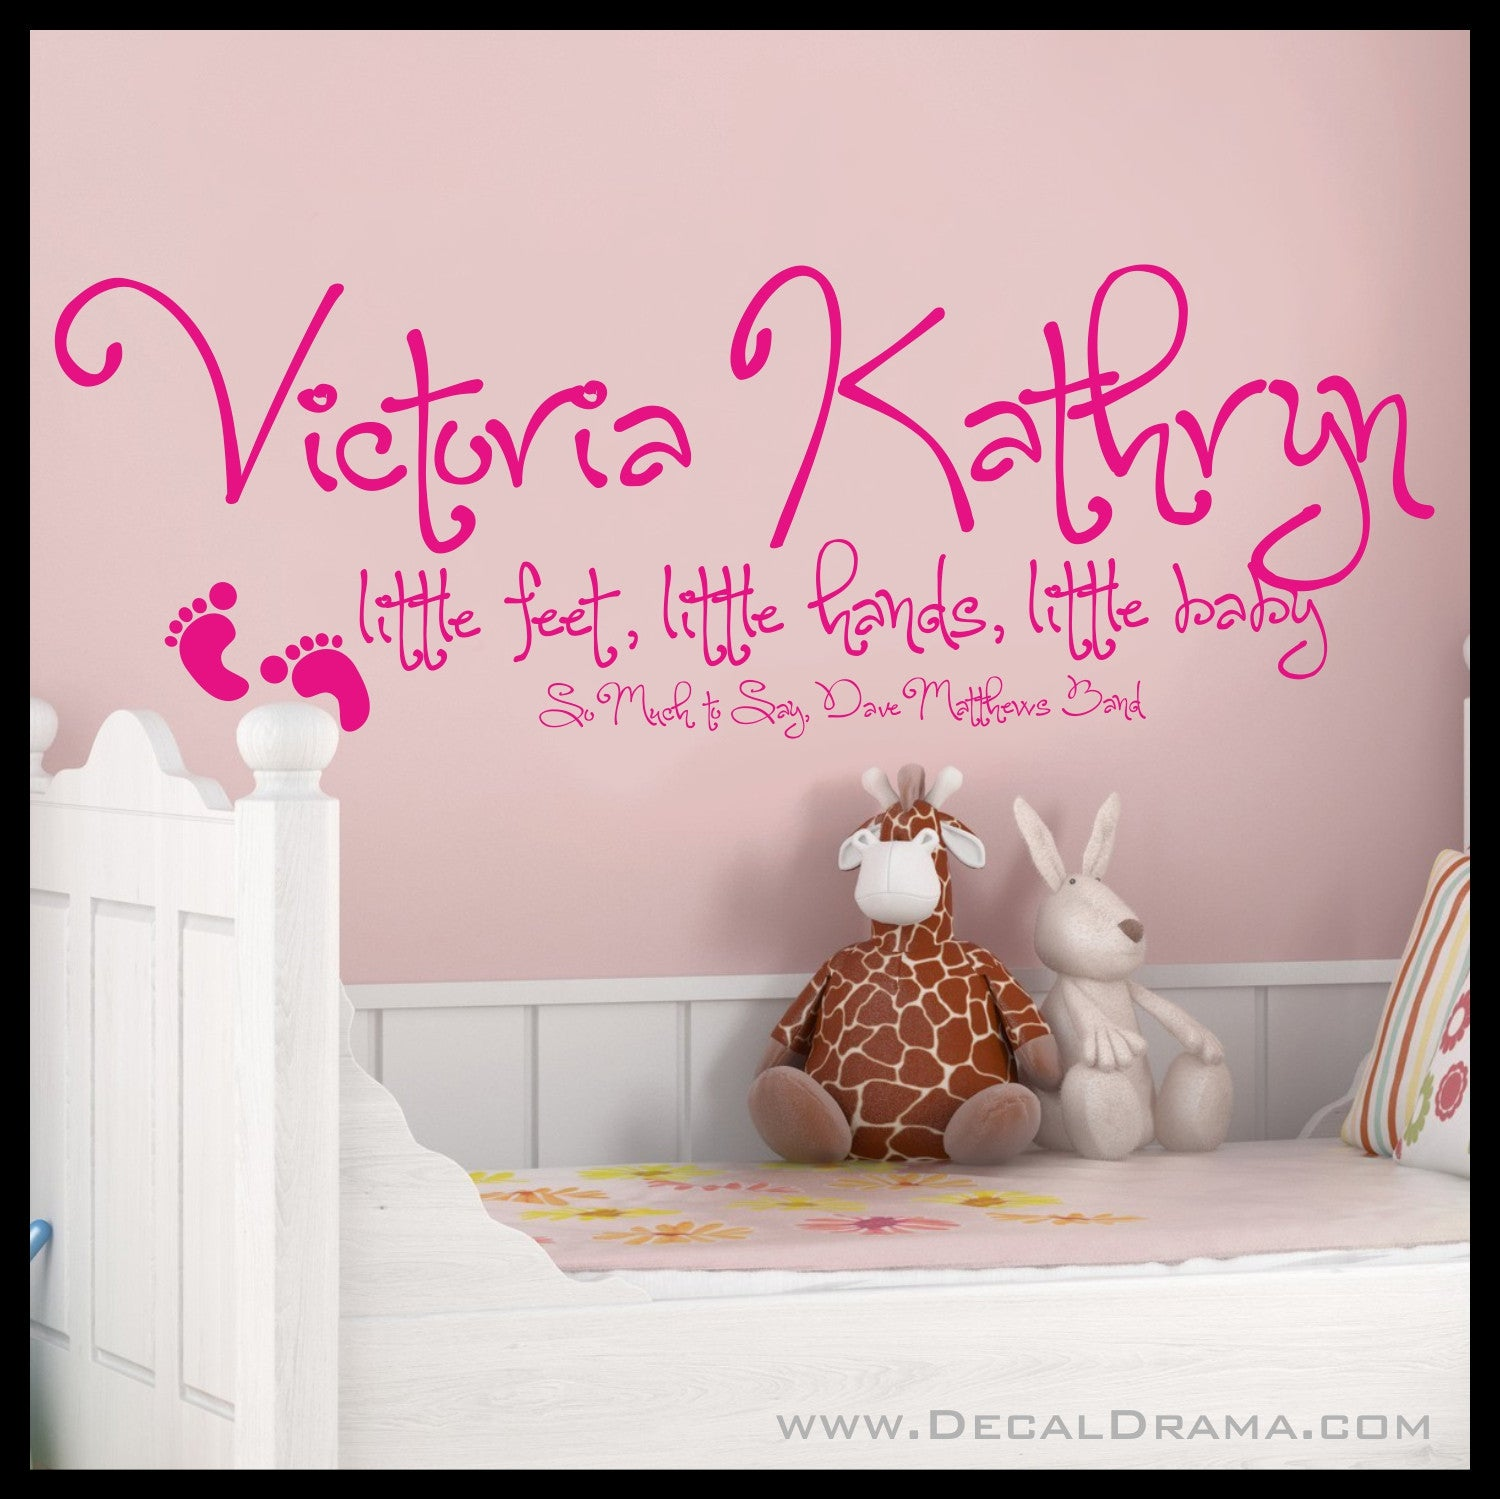 Personalized Child's Name Little Feet, Little Hands, Little Baby, Dave Matthews Band, So Much to Say lyrics Vinyl Wall Decal